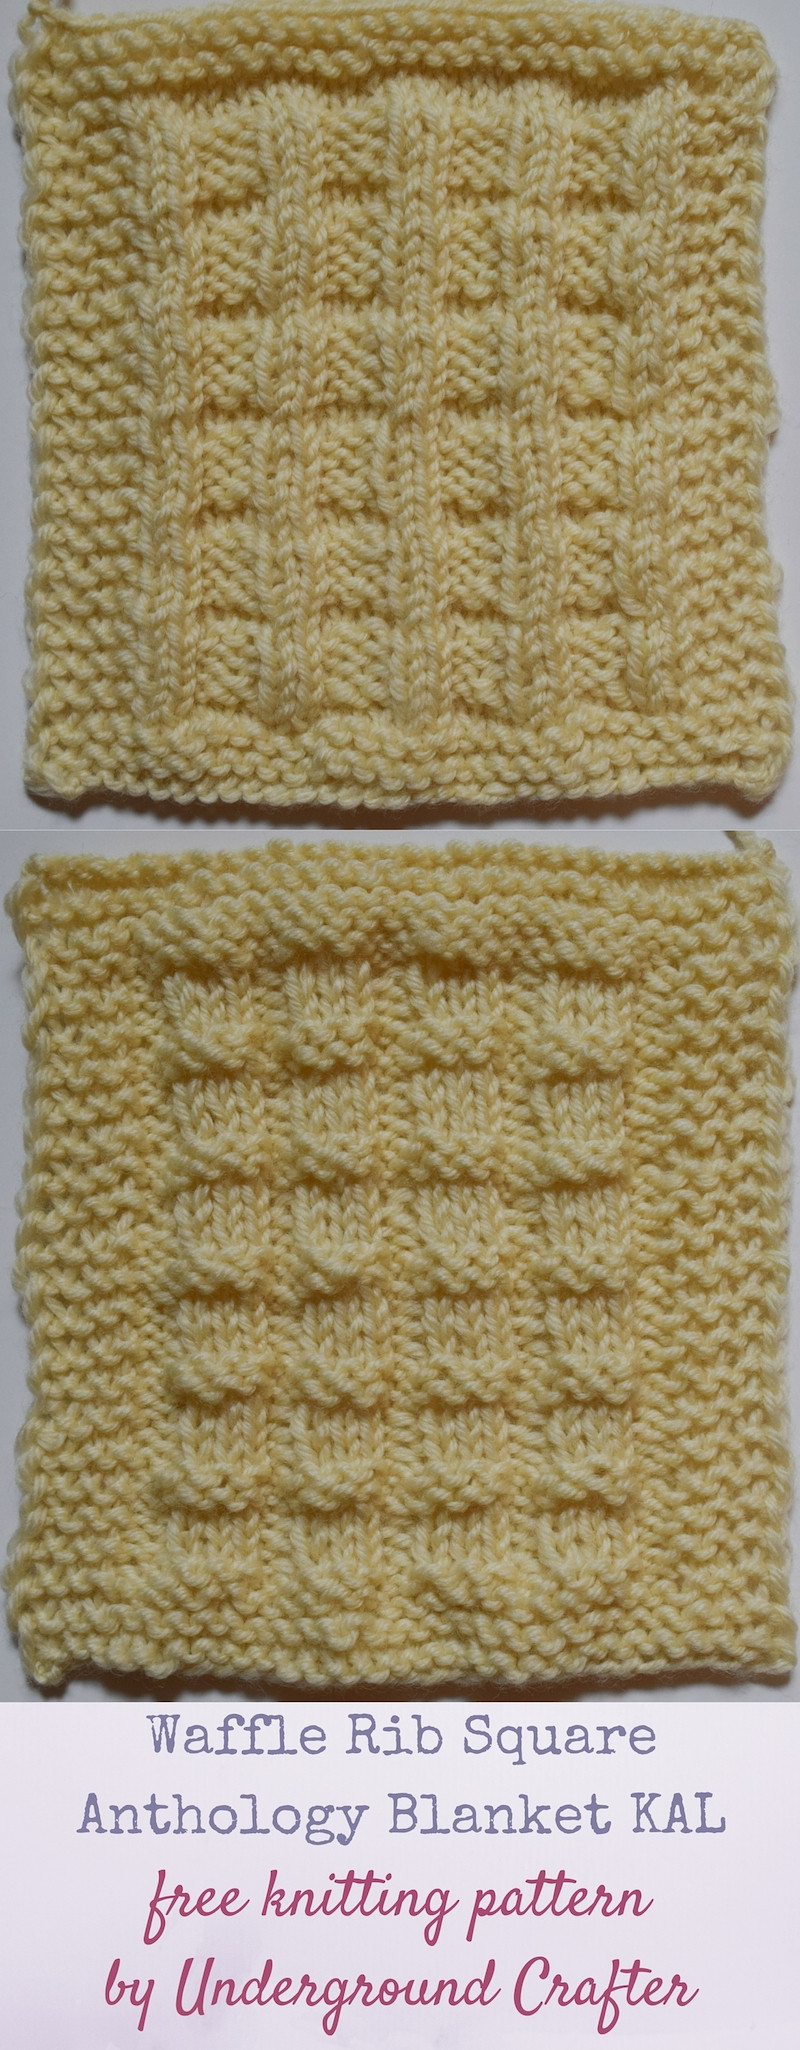 Unique Knitting Pattern Waffle Rib Square Knitted Square Patterns Of Lovely 50 Models Knitted Square Patterns